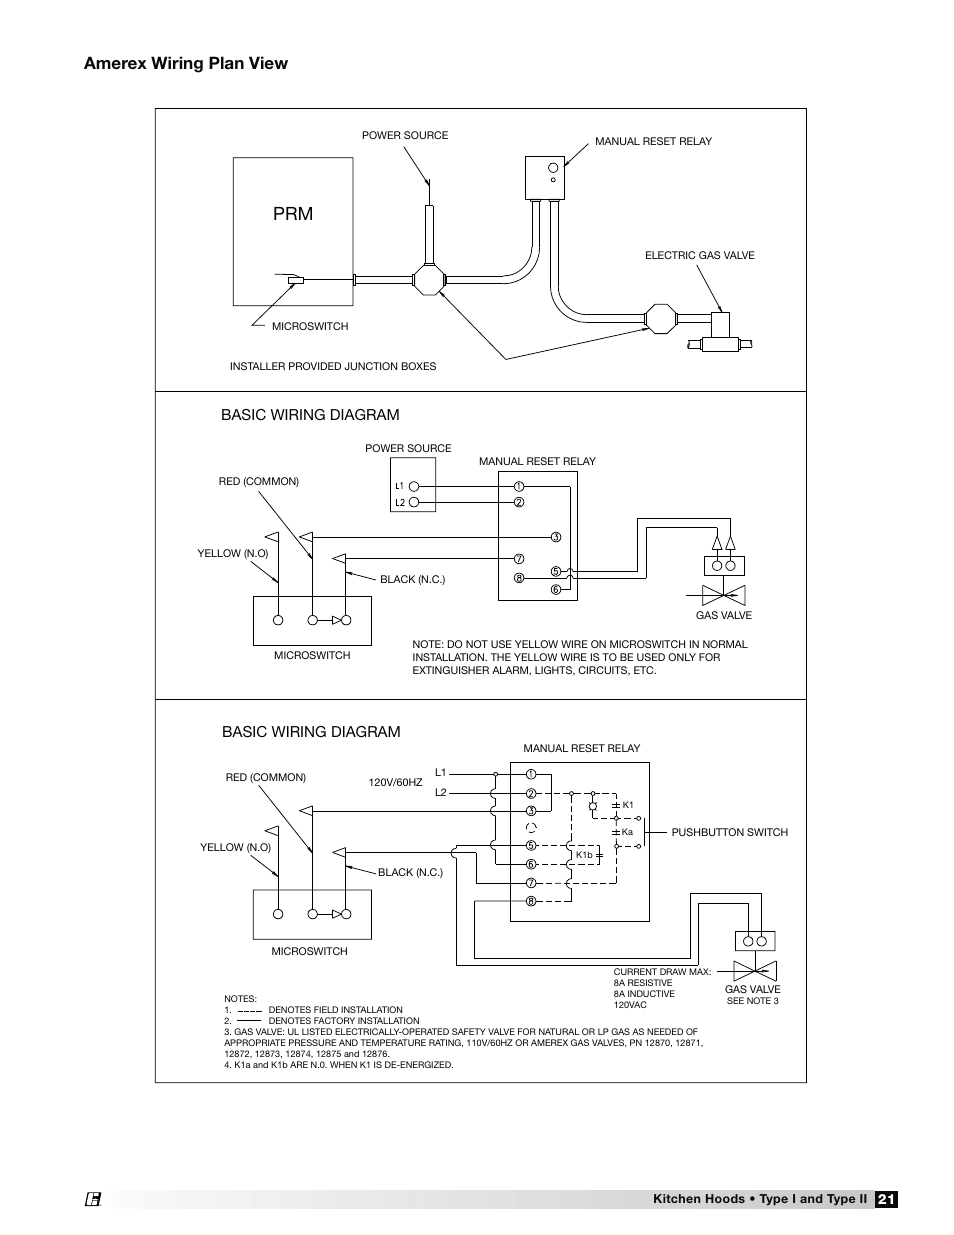 Amerex wiring plan view Basic wiring diagram Greenheck Fan Canopy